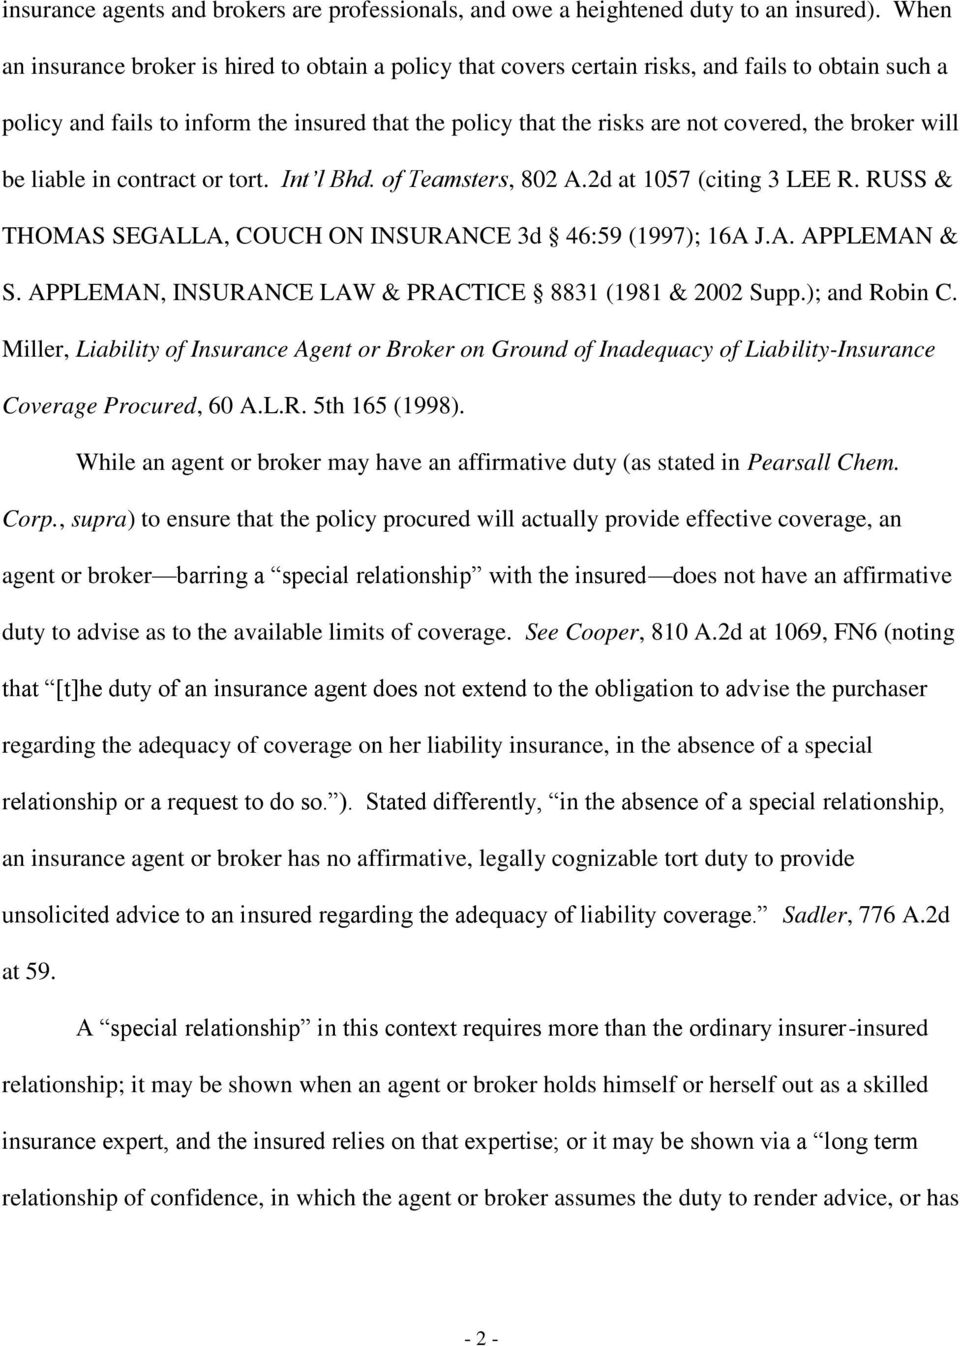 broker will be liable in contract or tort. Int l Bhd. of Teamsters, 802 A.2d at 1057 (citing 3 LEE R. RUSS & THOMAS SEGALLA, COUCH ON INSURANCE 3d 46:59 (1997); 16A J.A. APPLEMAN & S.